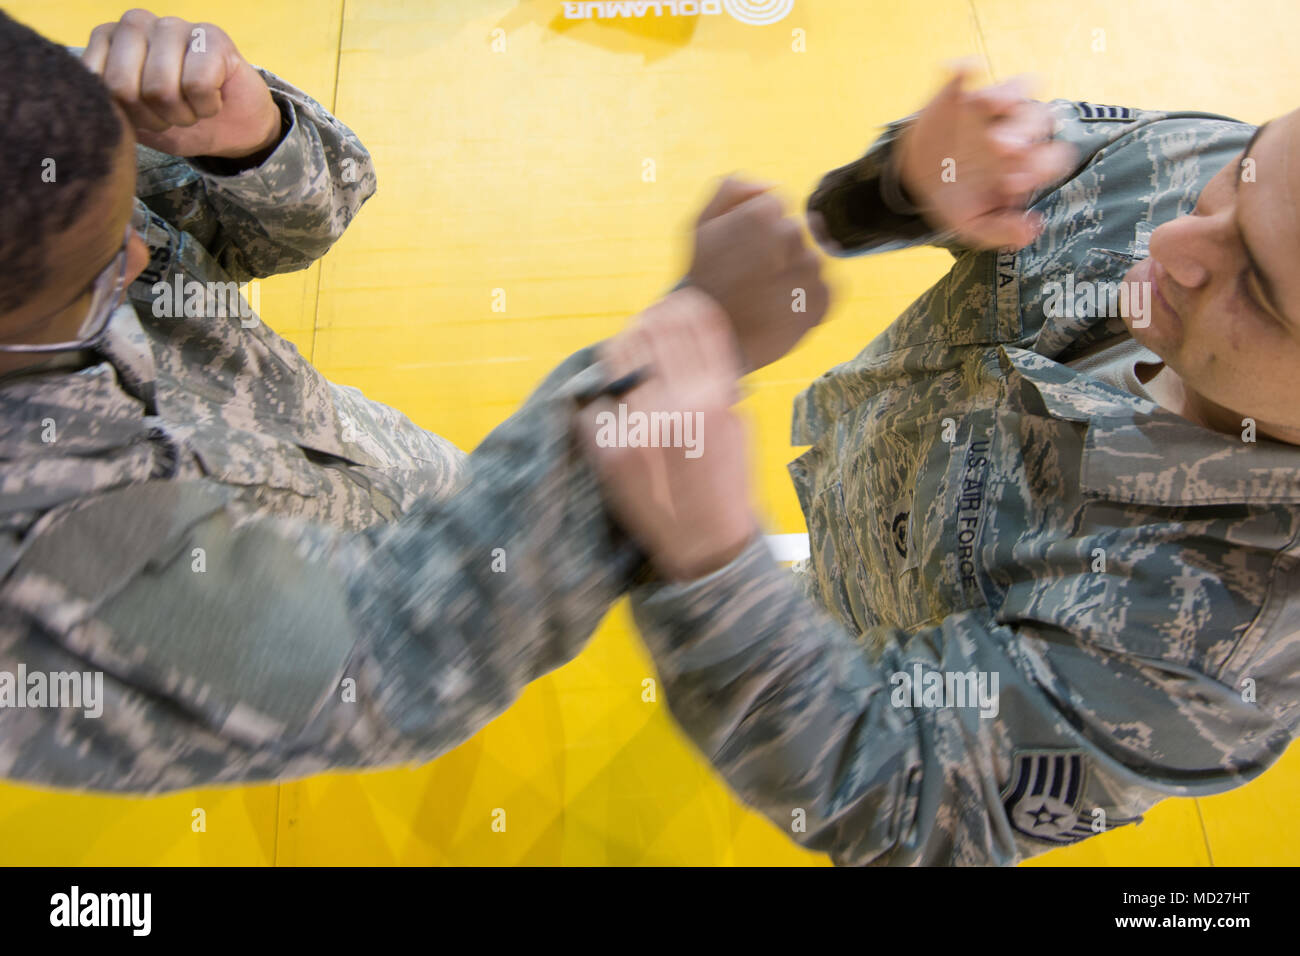 U.S. Air Force Staff Sgt. Mario Huerta (right), assigned to the SACEUR Security Detachment, describes the jab thrown by U.S. Army  Sgt. Terrance Simmons, with the Northern Law Center, 21st Theater Sustainment Command, throws, during the  Joint Tactical Combatives Course, on Chièvres Air Base, Belgium, March 9, 2018. (U.S. Army photo by Visual Information Specialist Pierre-Etienne Courtejoie) - Stock Image